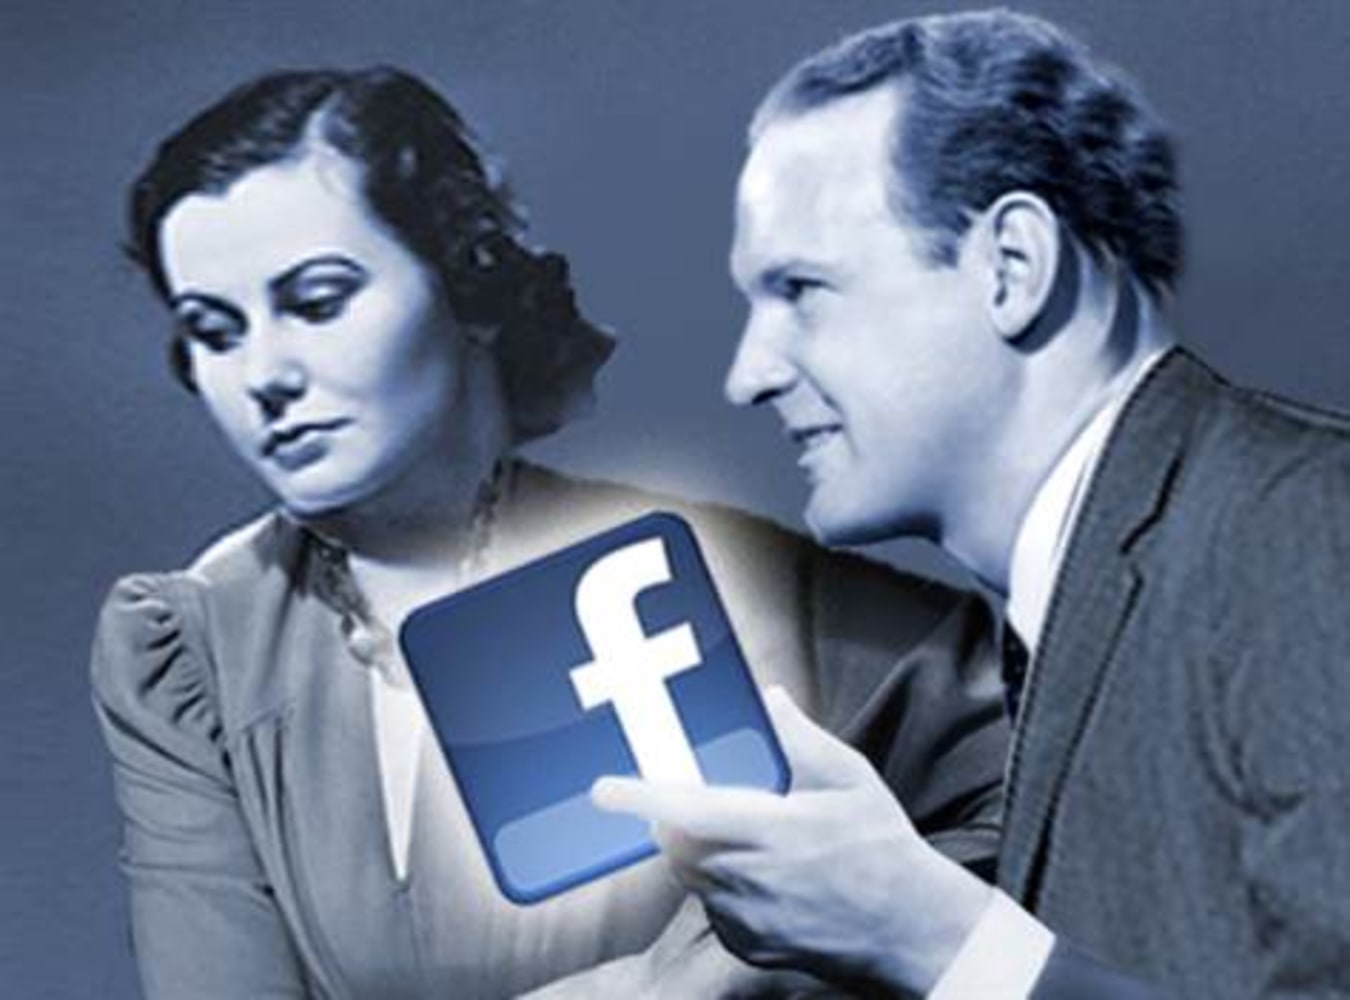 Facebook offers public posting for teens … and fresh meat for marketers